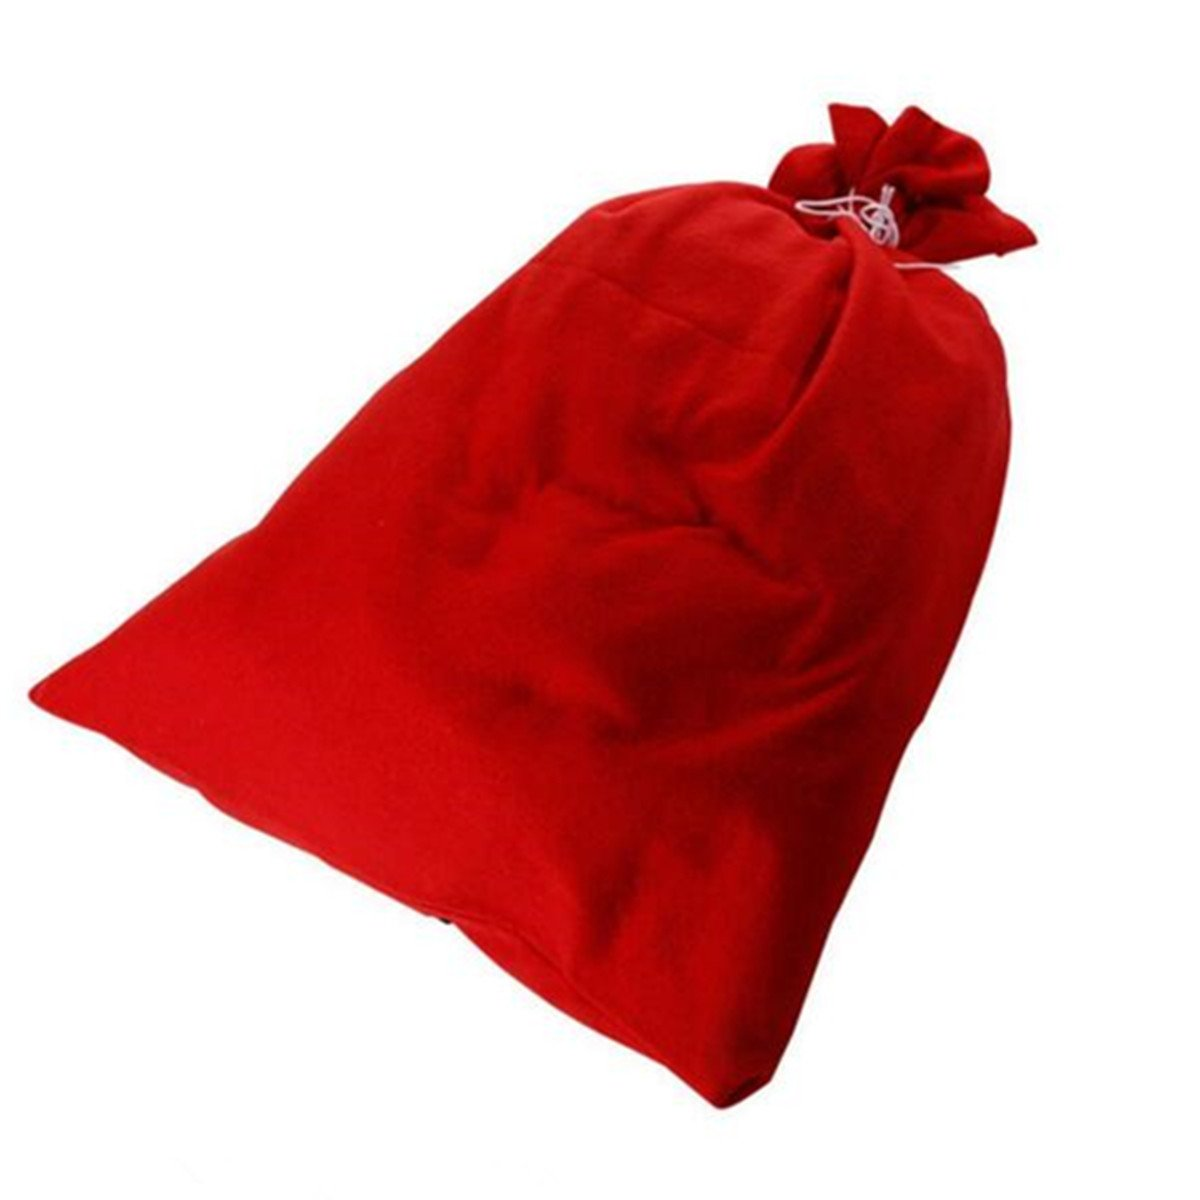 VERISA Extra Large Christmas Santa Sack Bag Stocking for Gifts Presents Packing 60*90cm Red